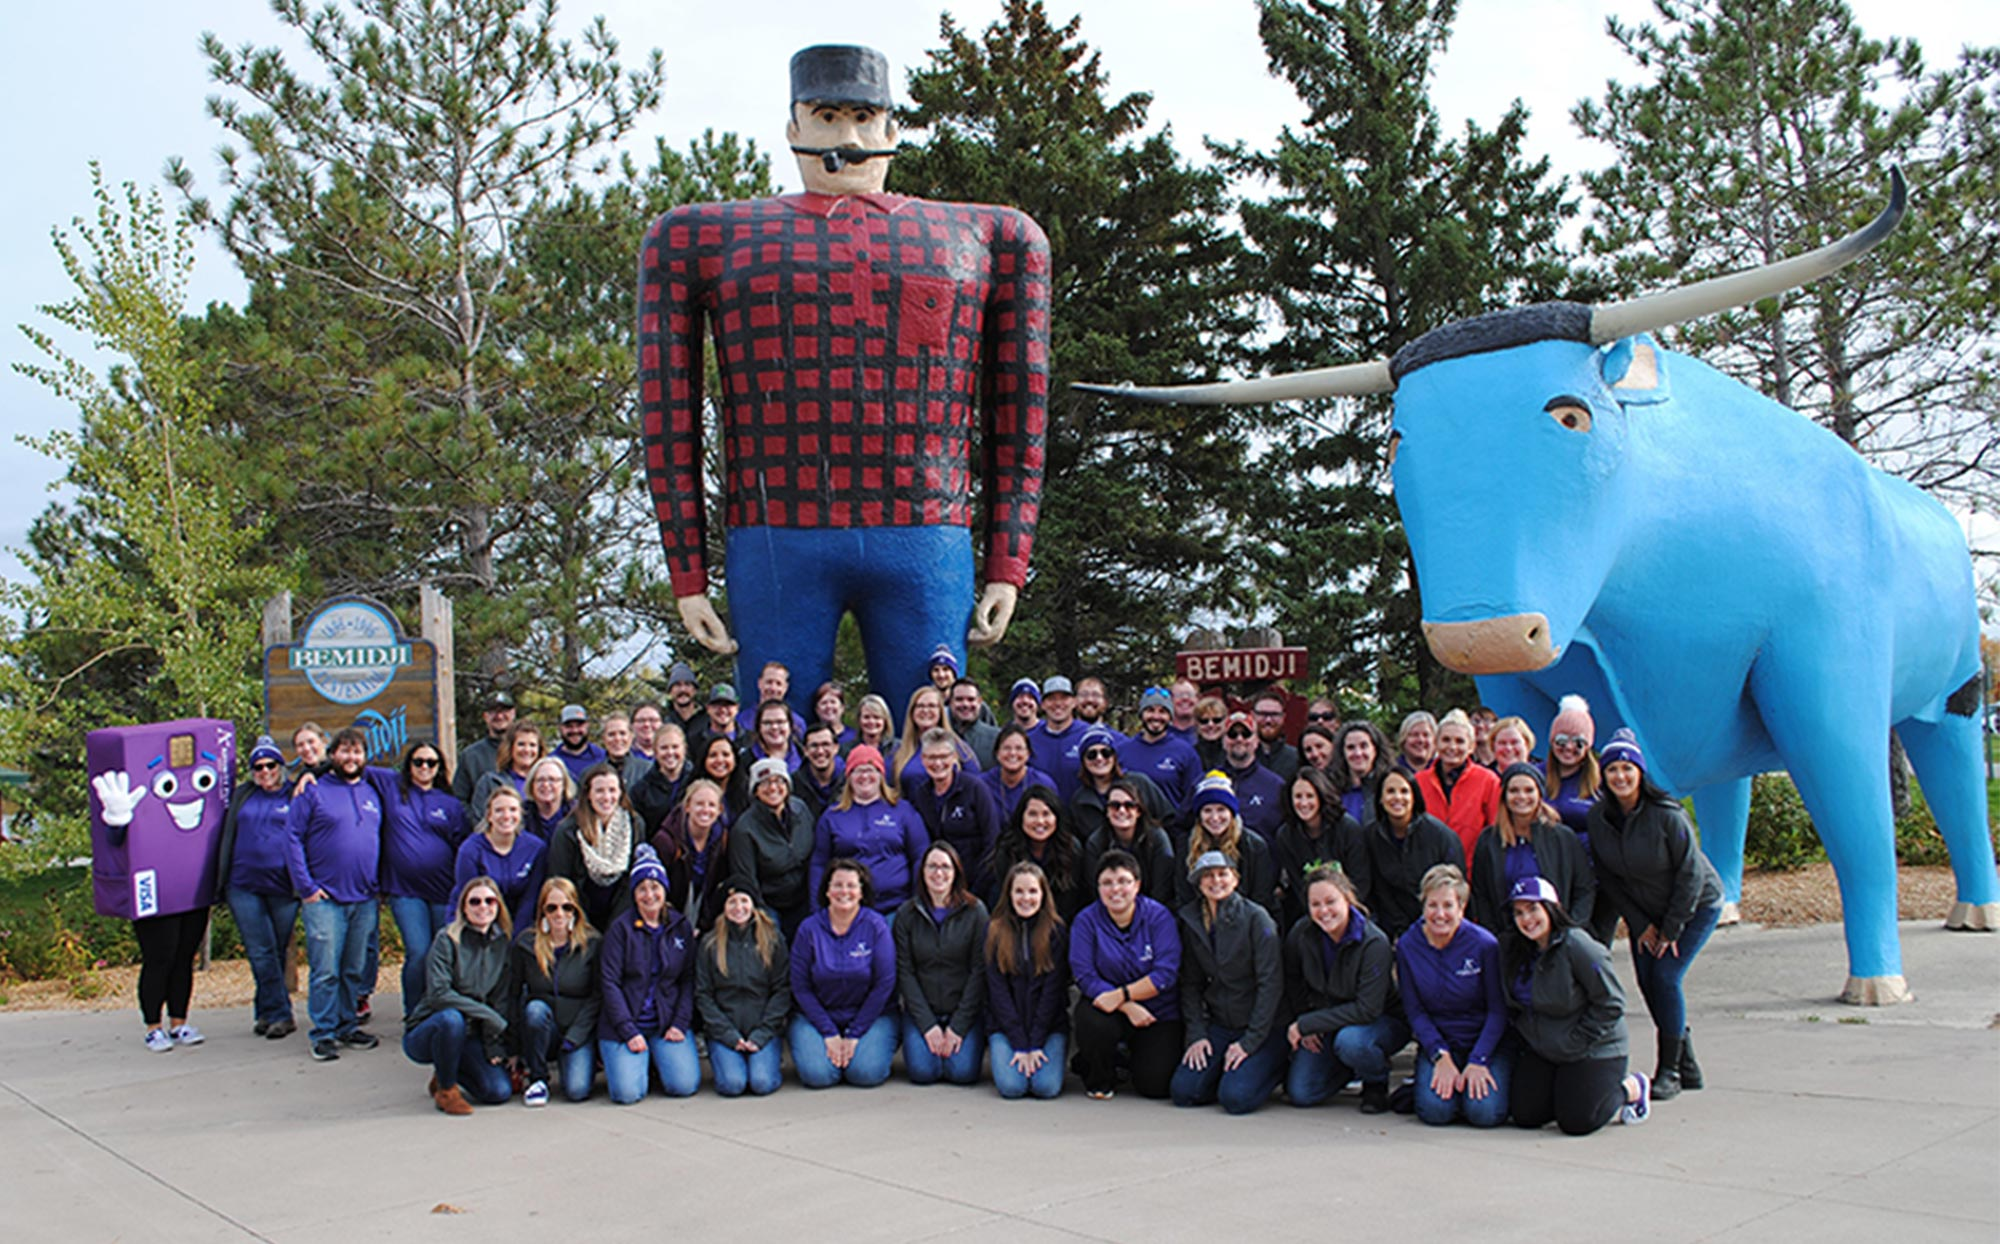 Employees from Affinity Plus are featured in Bemidji.